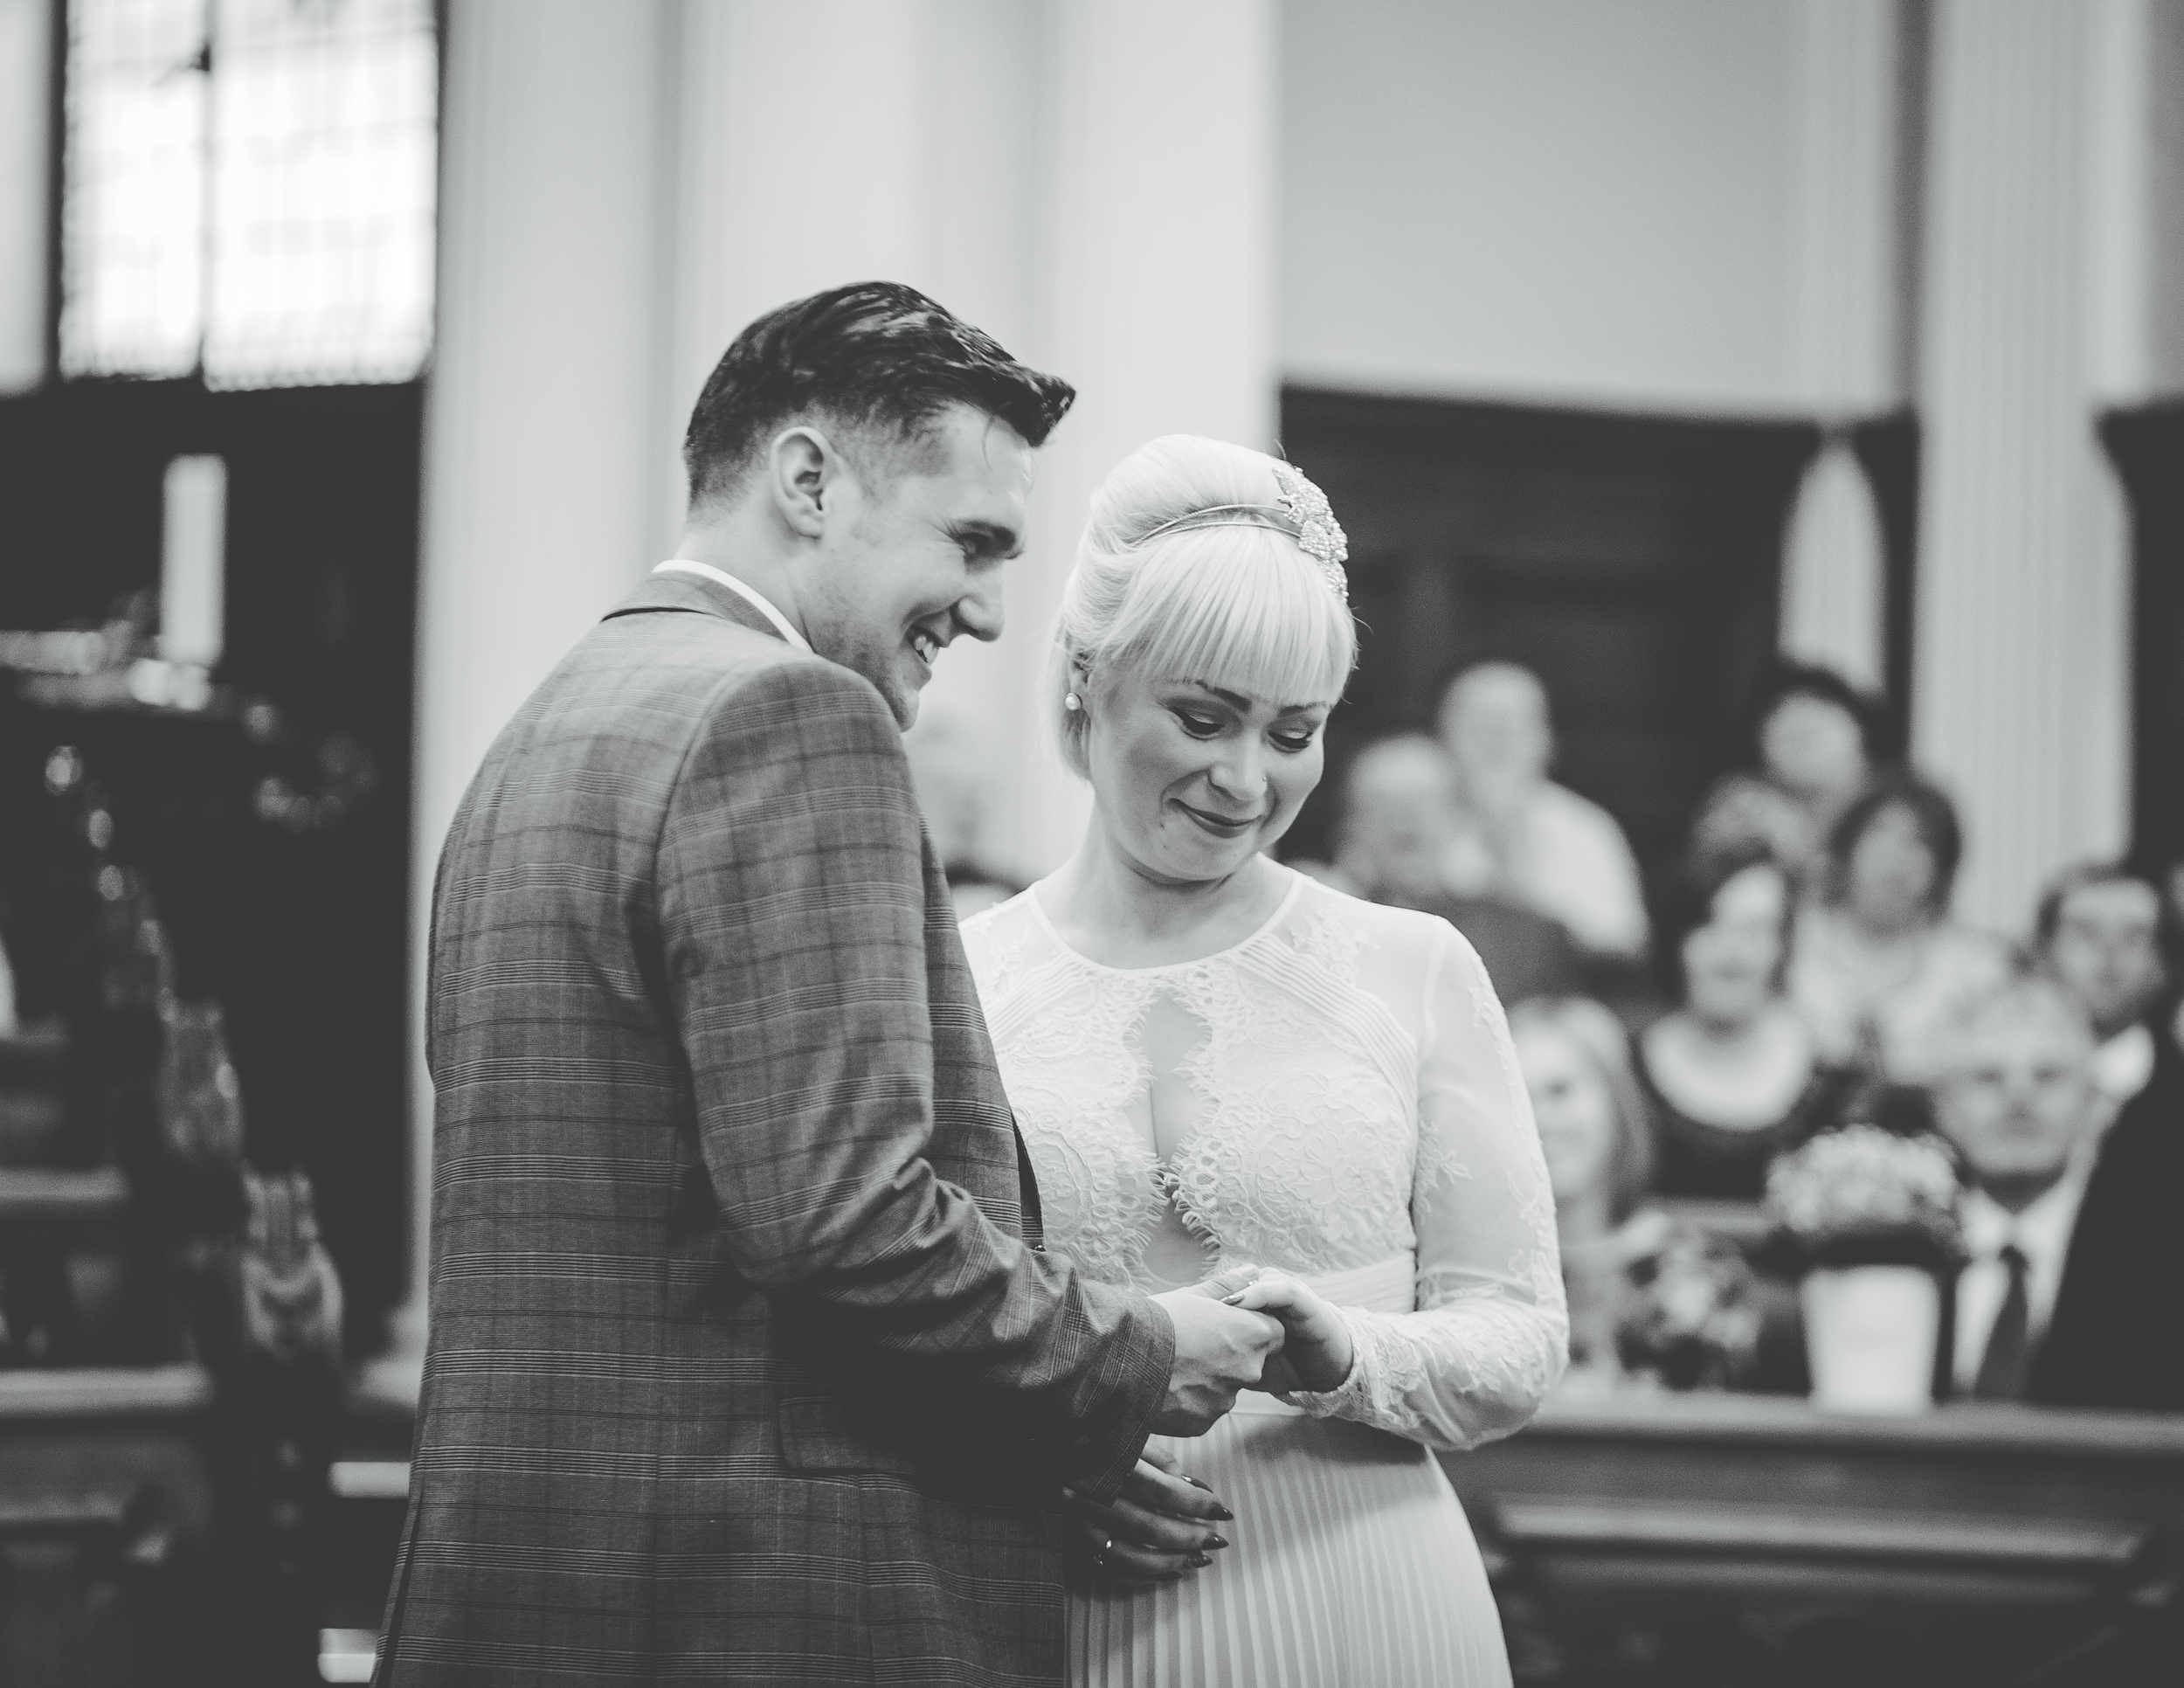 exchanging rings - stockport town hall wedding